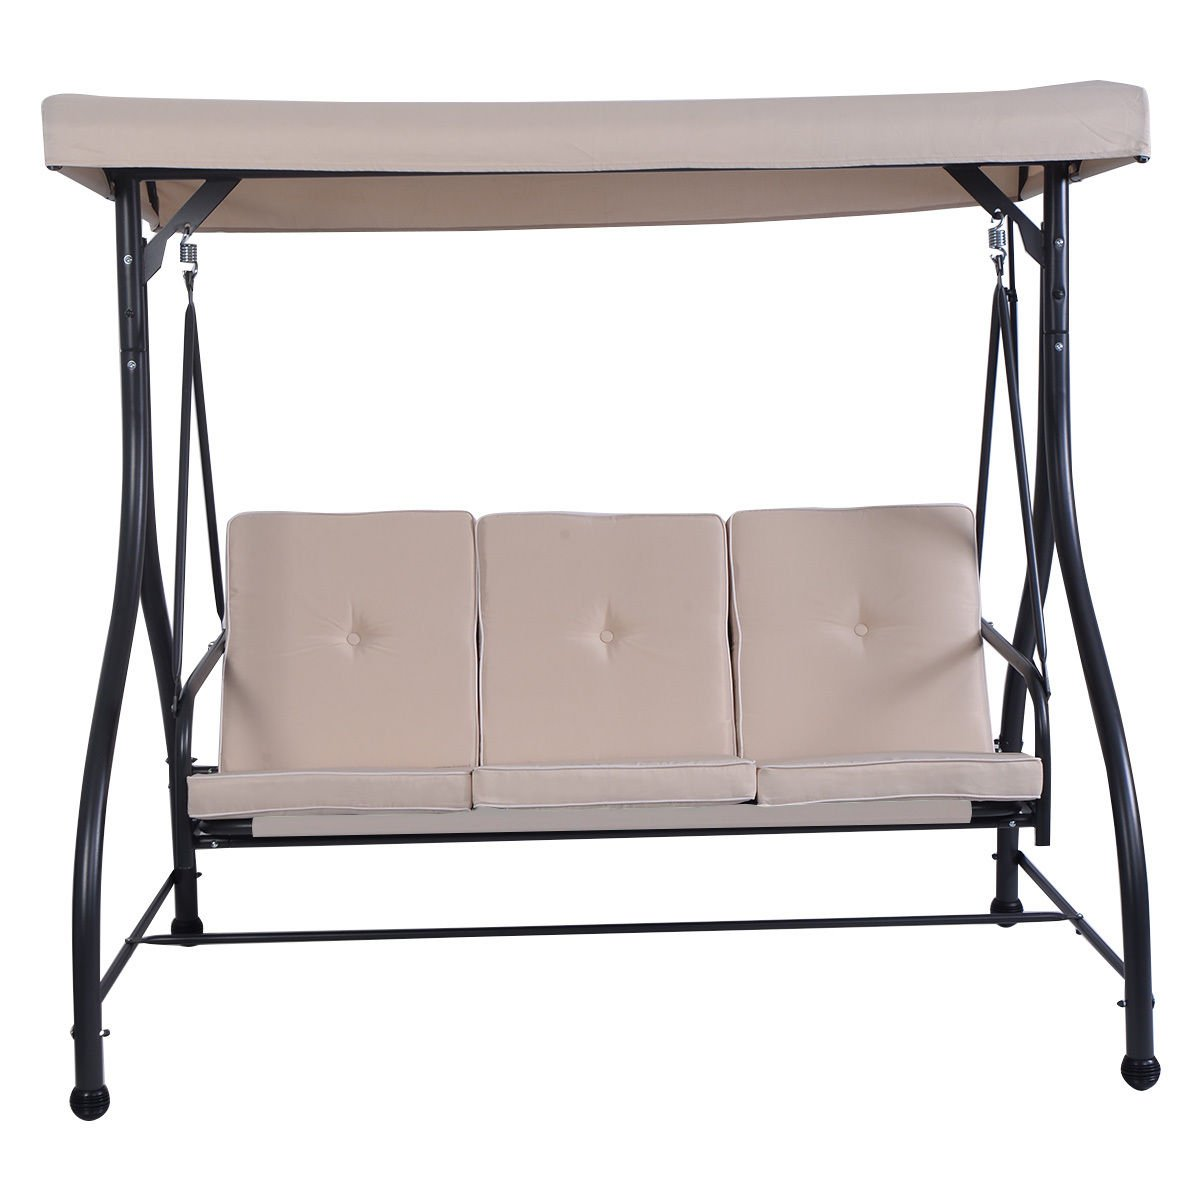 Globe House Products GHP 750-Lbs Capacity Black Frame & Beige Fabric Steel 3-Seat Swing Bench with Cushions by Globe House Products (Image #1)